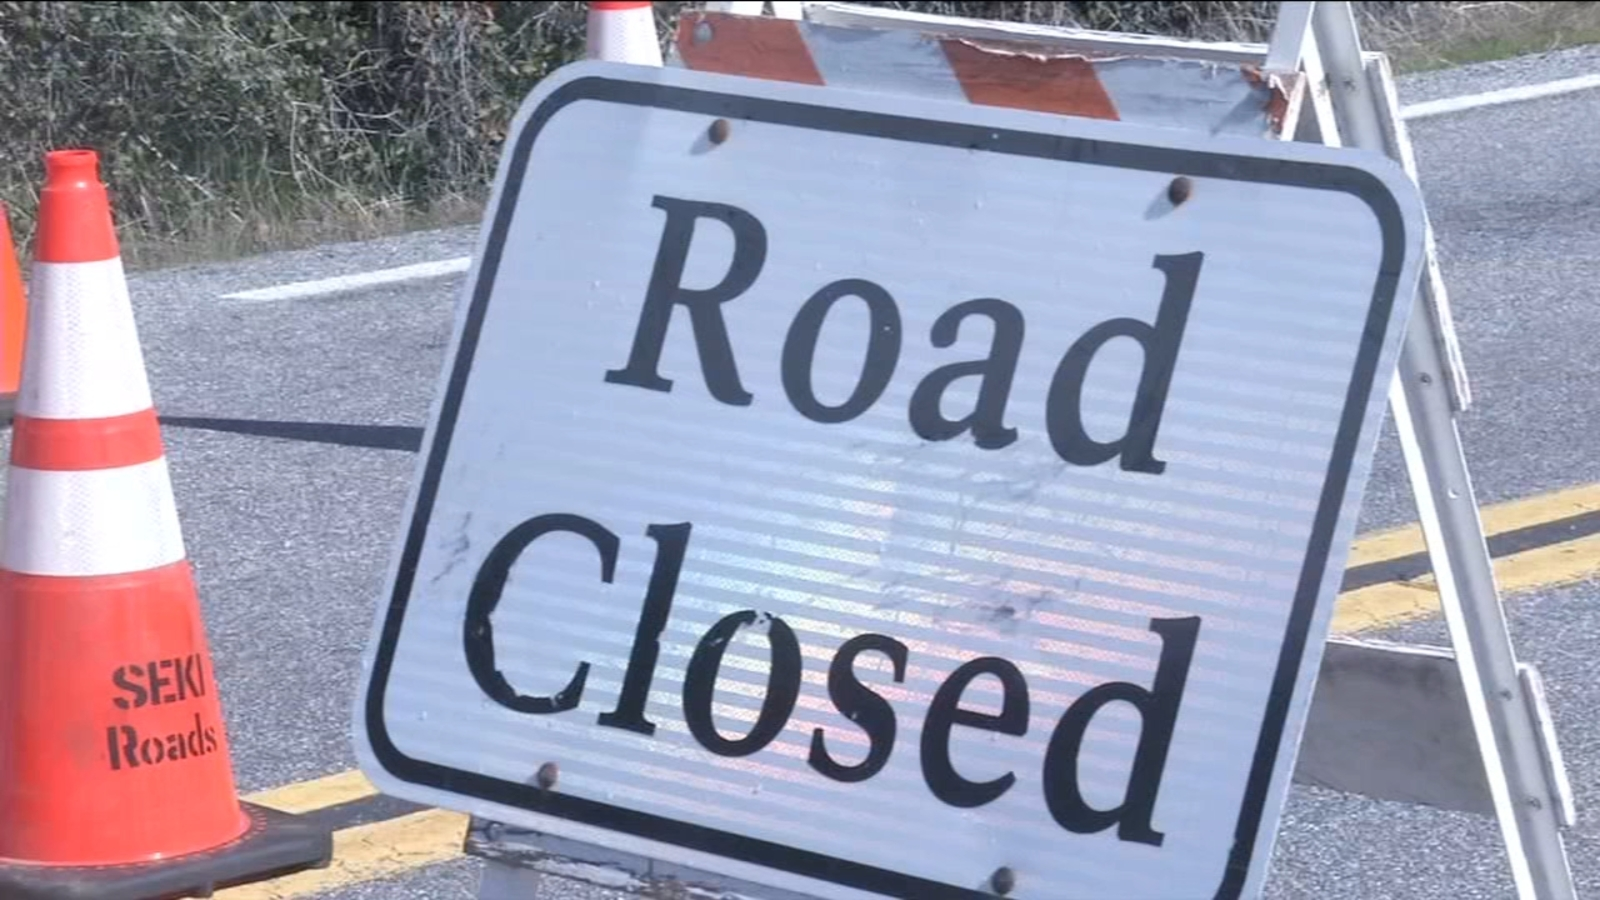 Severe weather to shut down part of Generals Highway at 3 p.m.